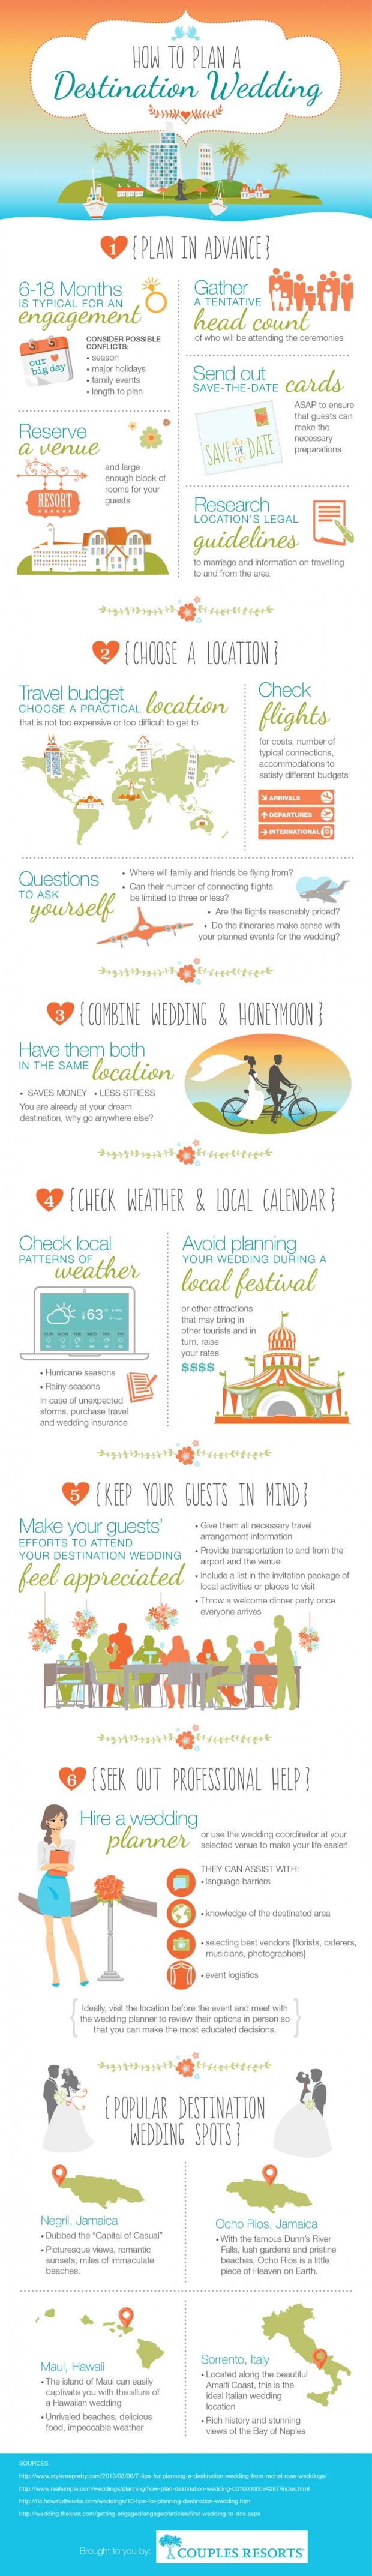 CR DestWedding Infographic v1A 01 620x4293 How To Plan A Destination Wedding